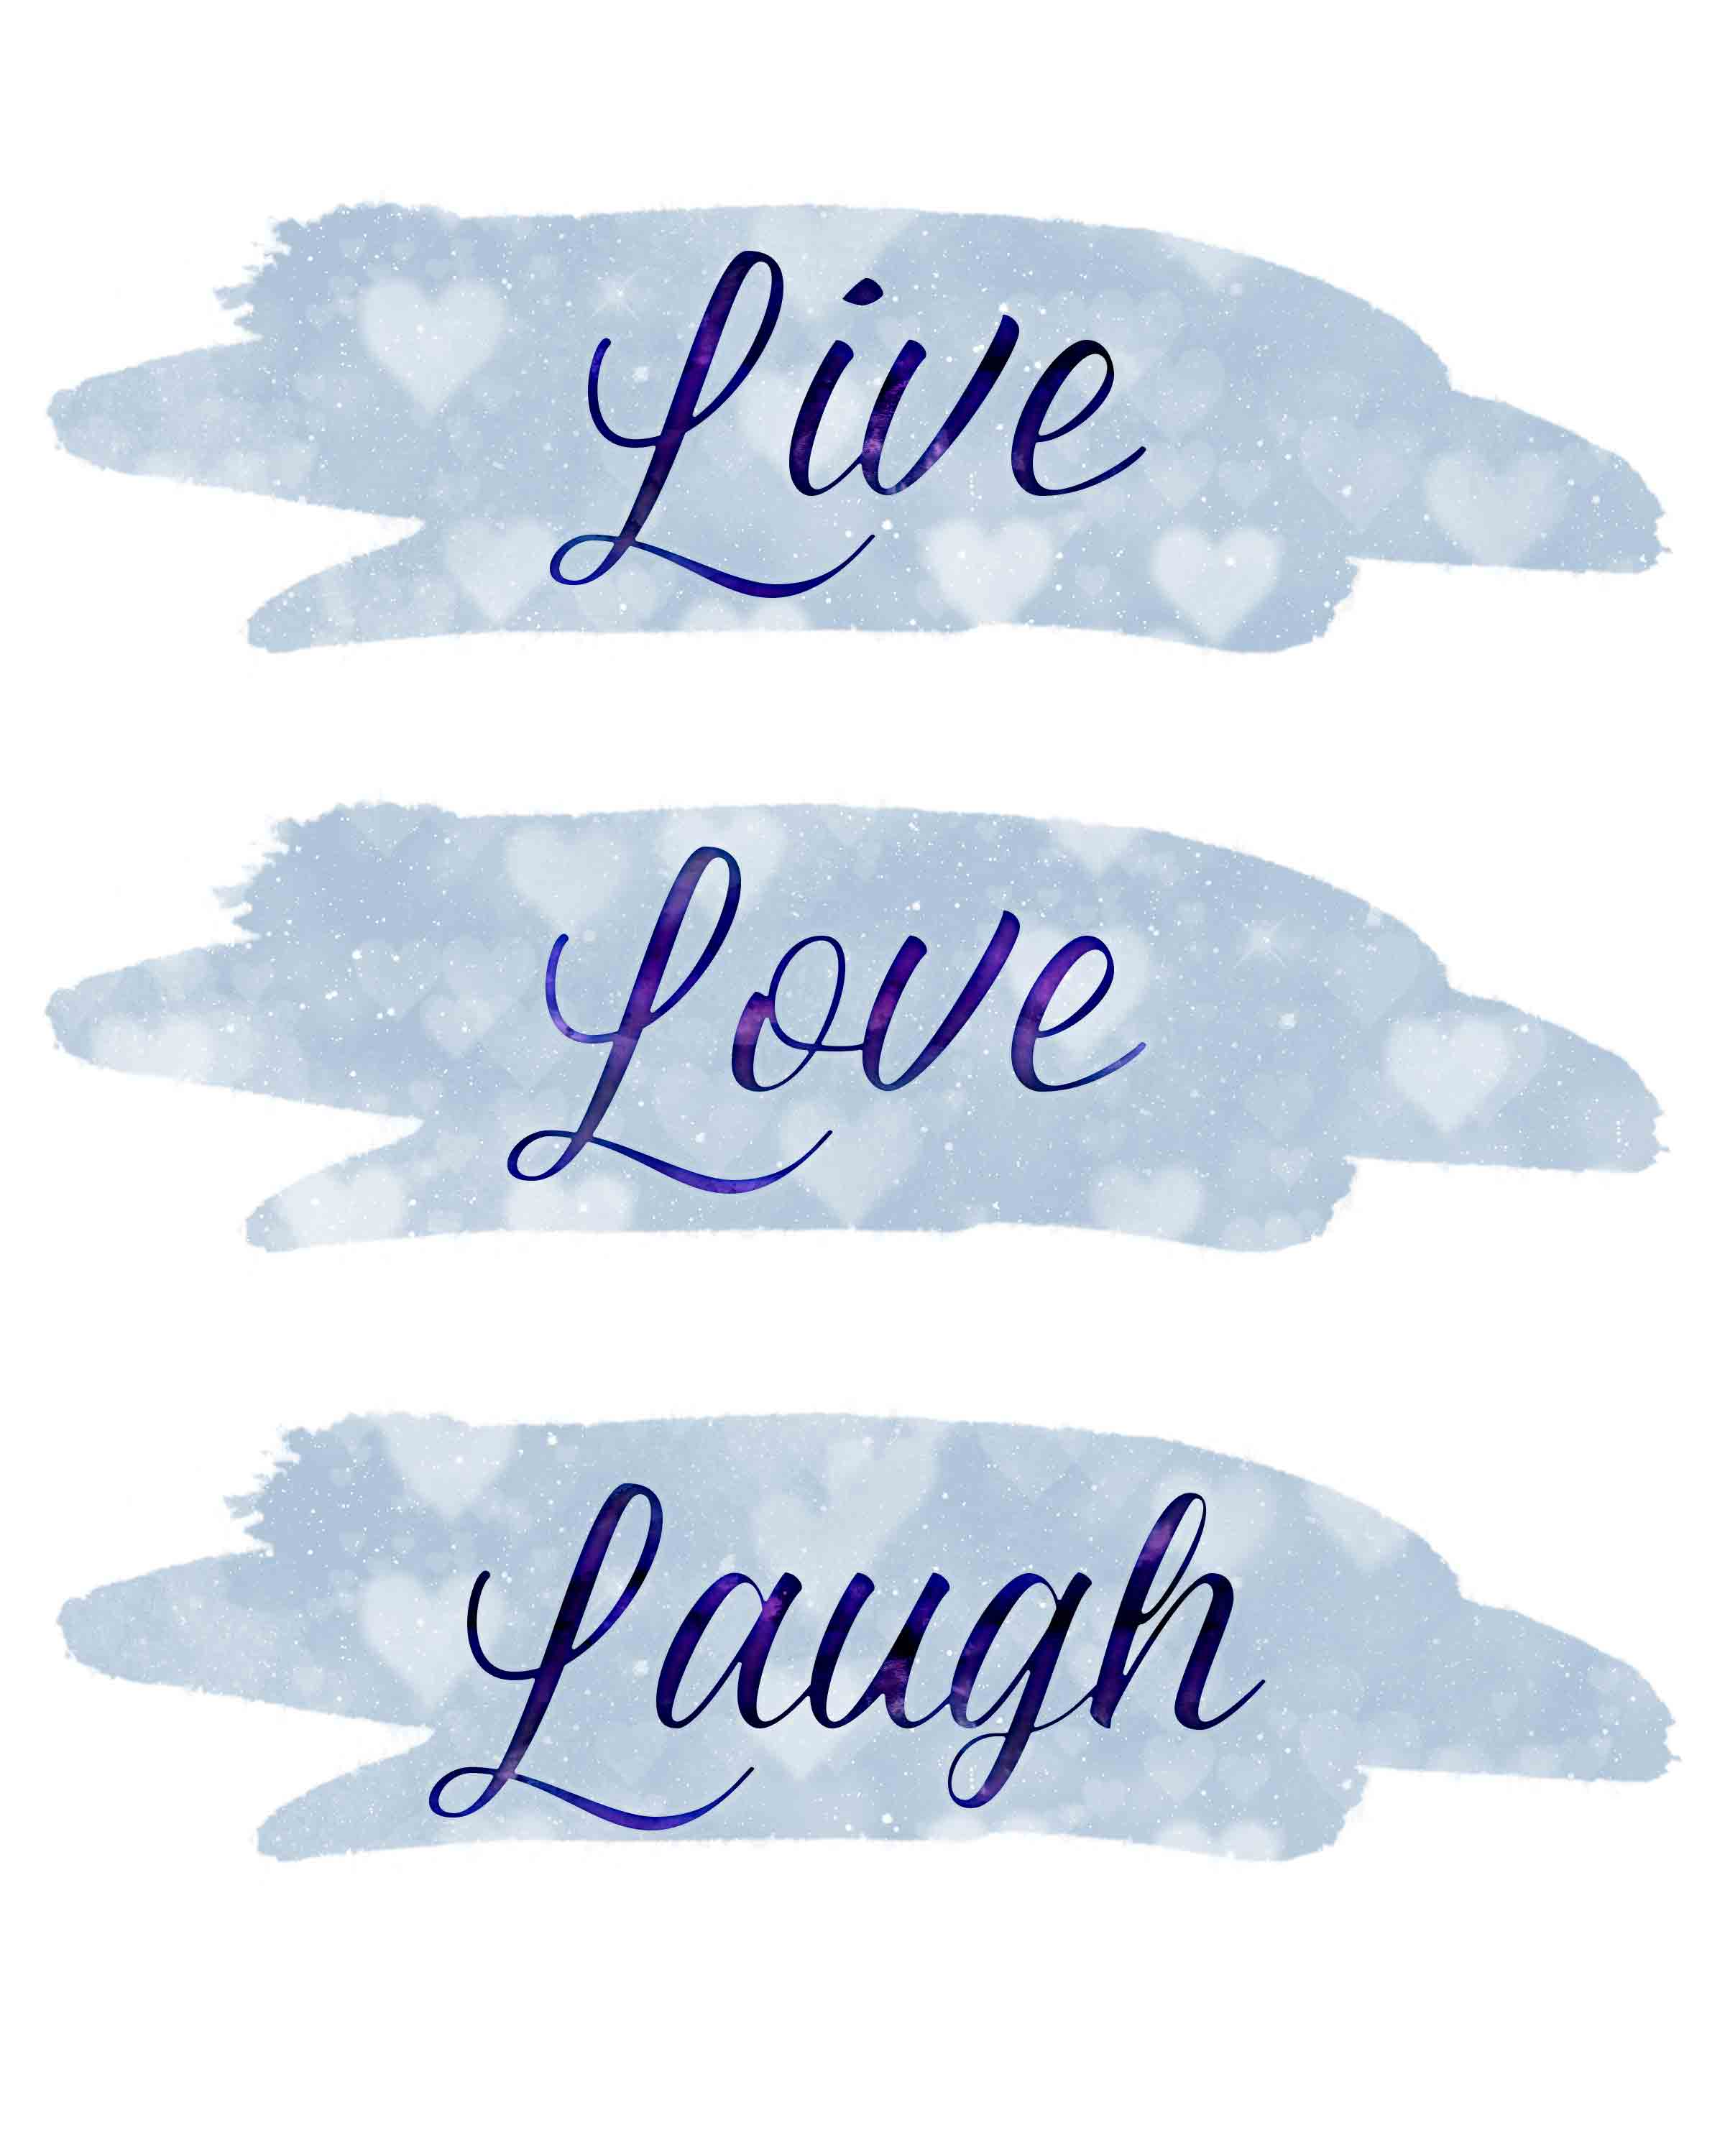 Live, Love, Laugh free inspirational printable. #free #freeprintable #inspiration